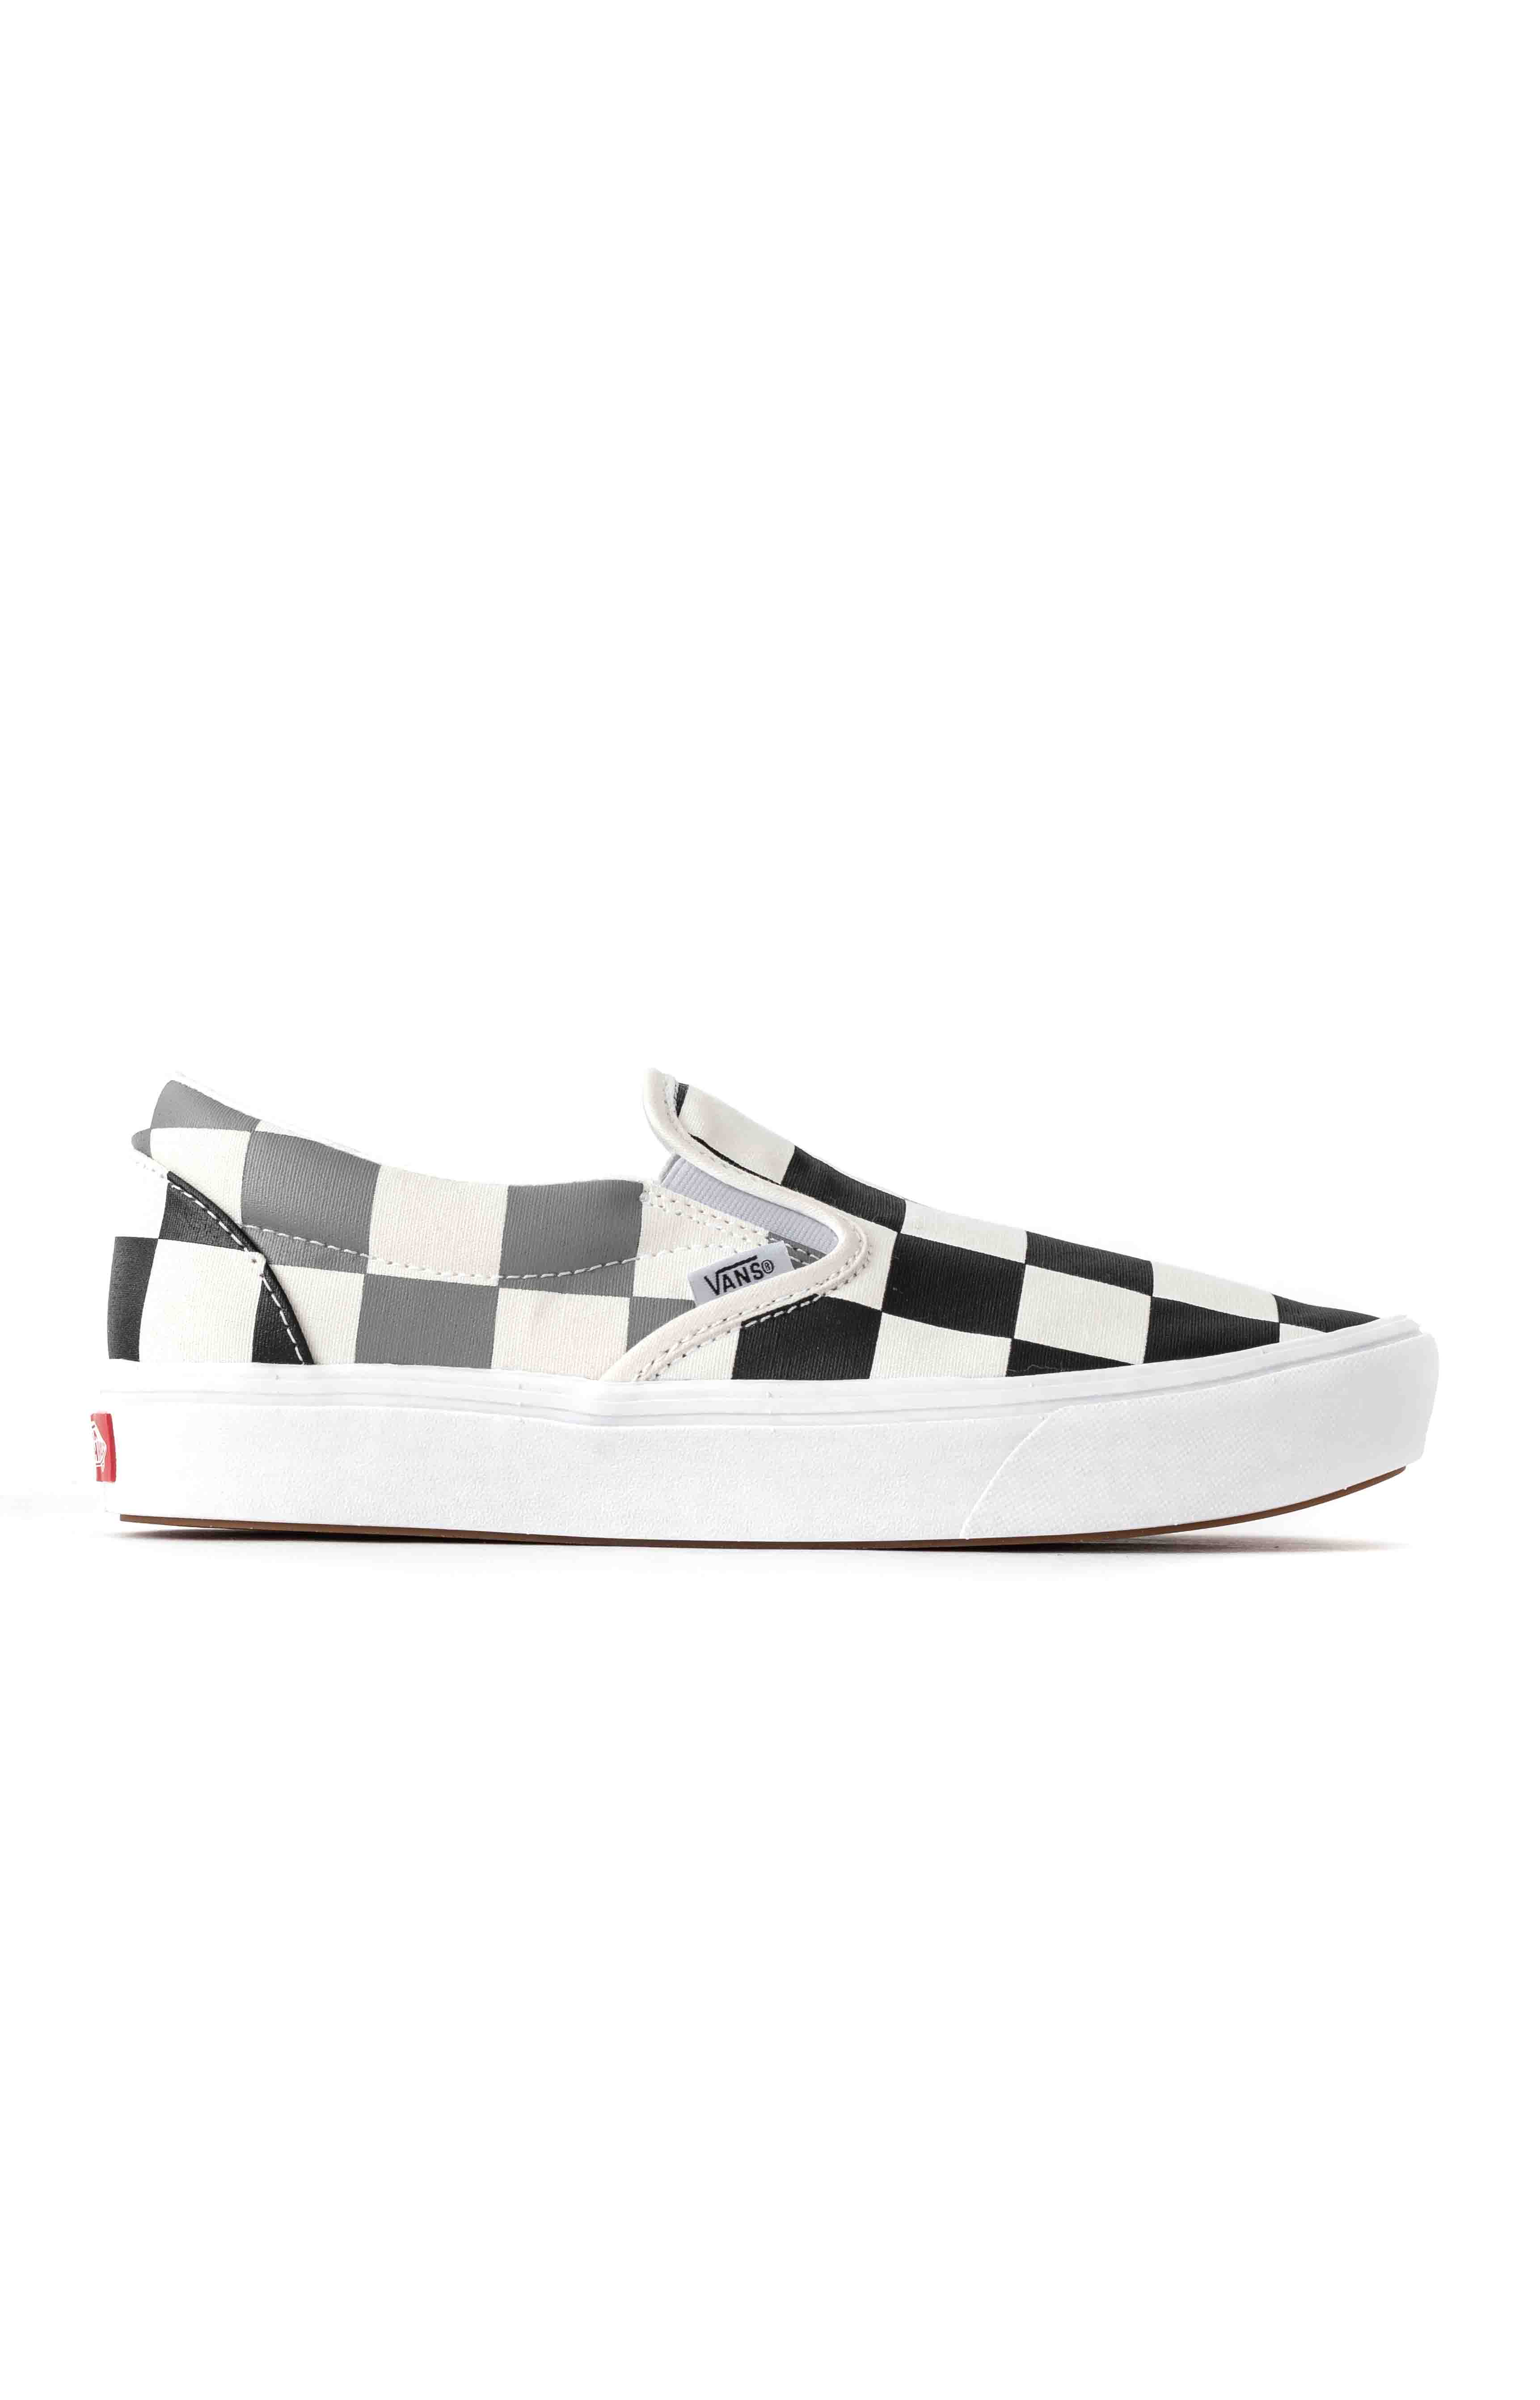 (WMDWXA) Half Big Checker ComfyCush Slip-On Shoe - Black/Grey